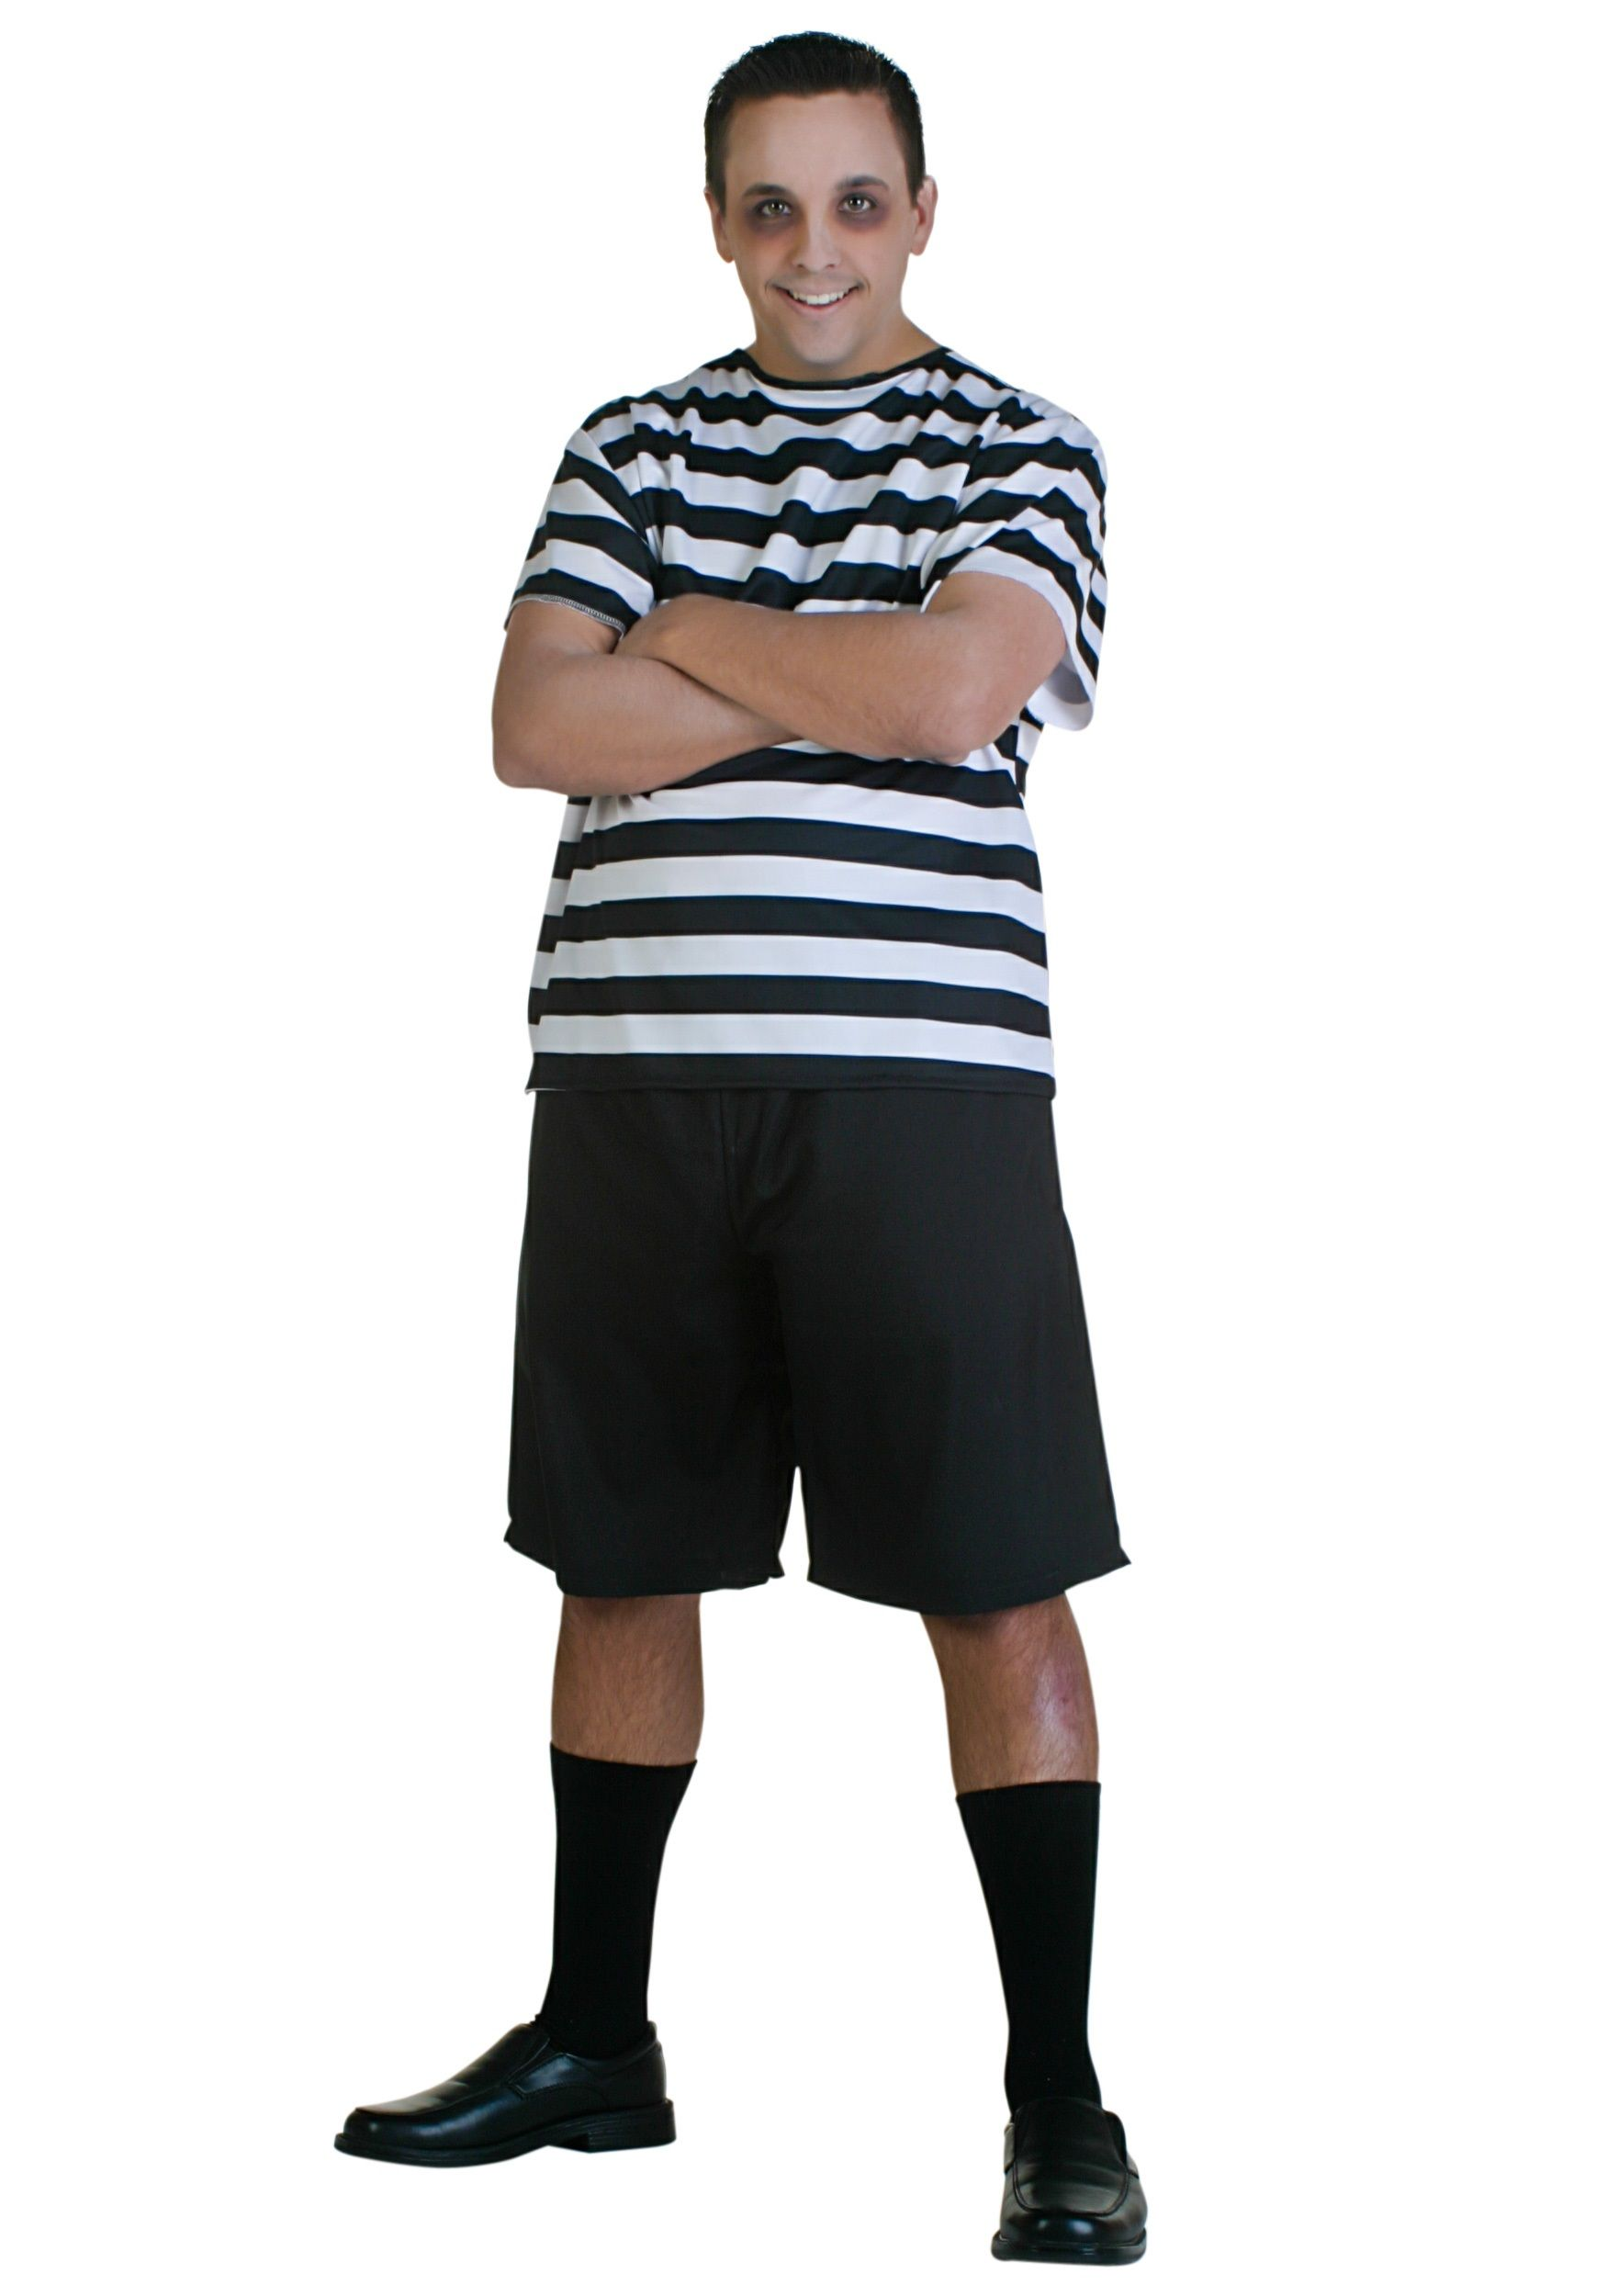 Pugsley Addams Costume Halloween Pinterest Disfraces para